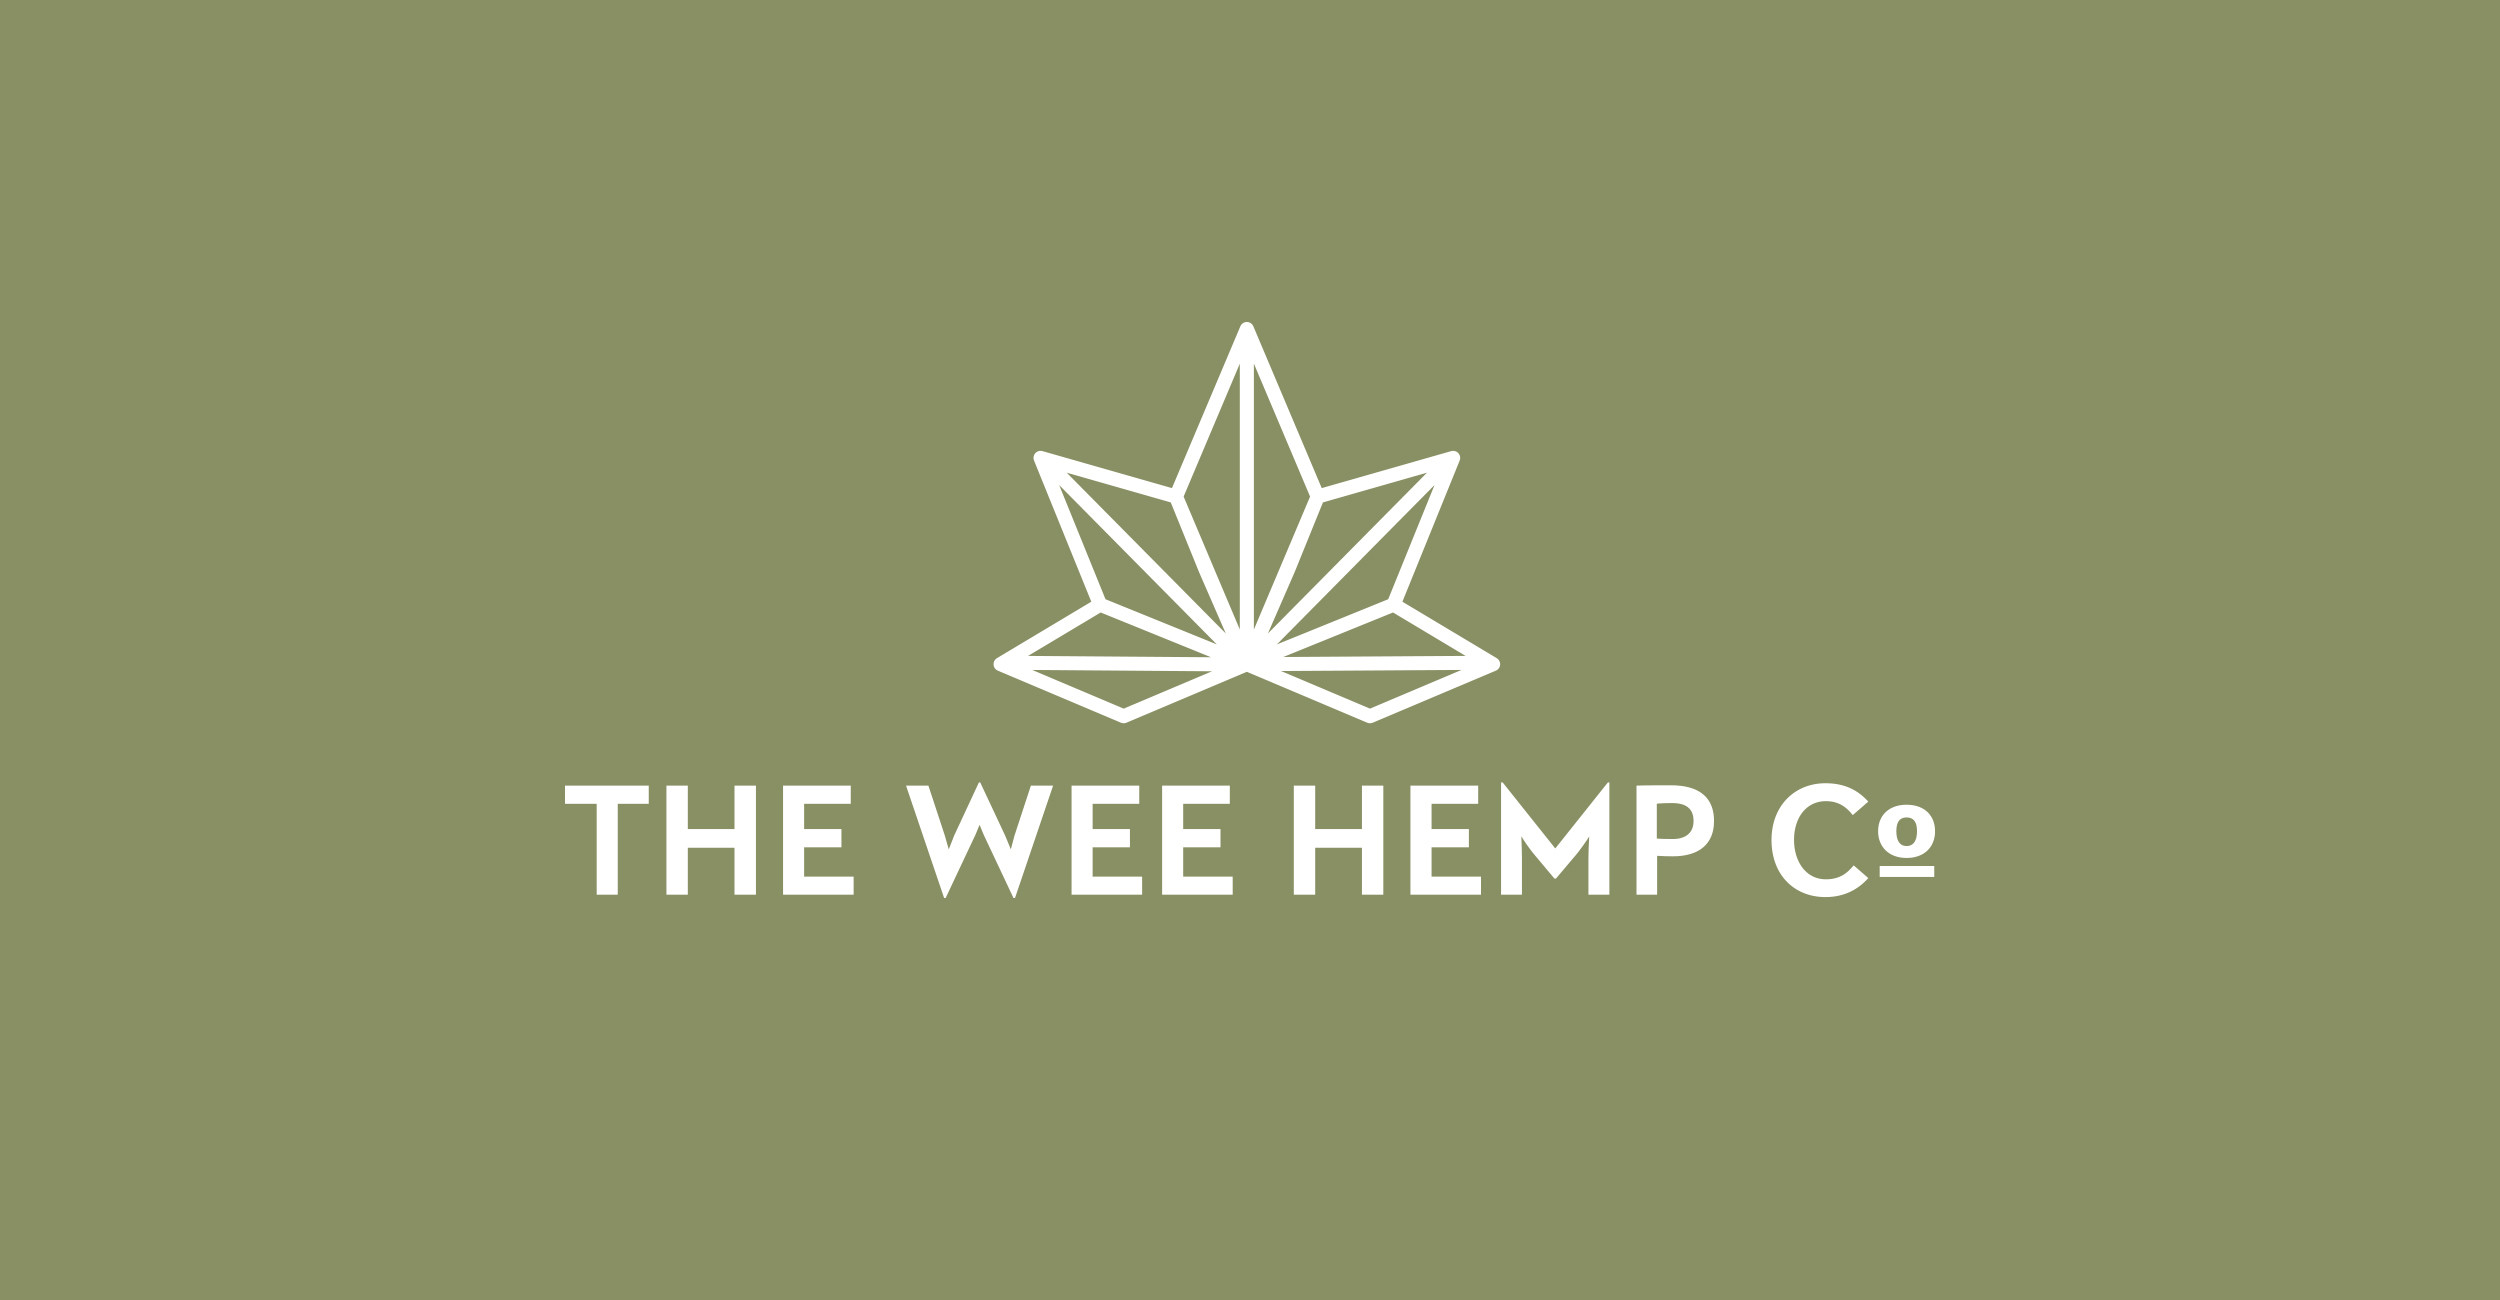 The Wee Hemp Co.